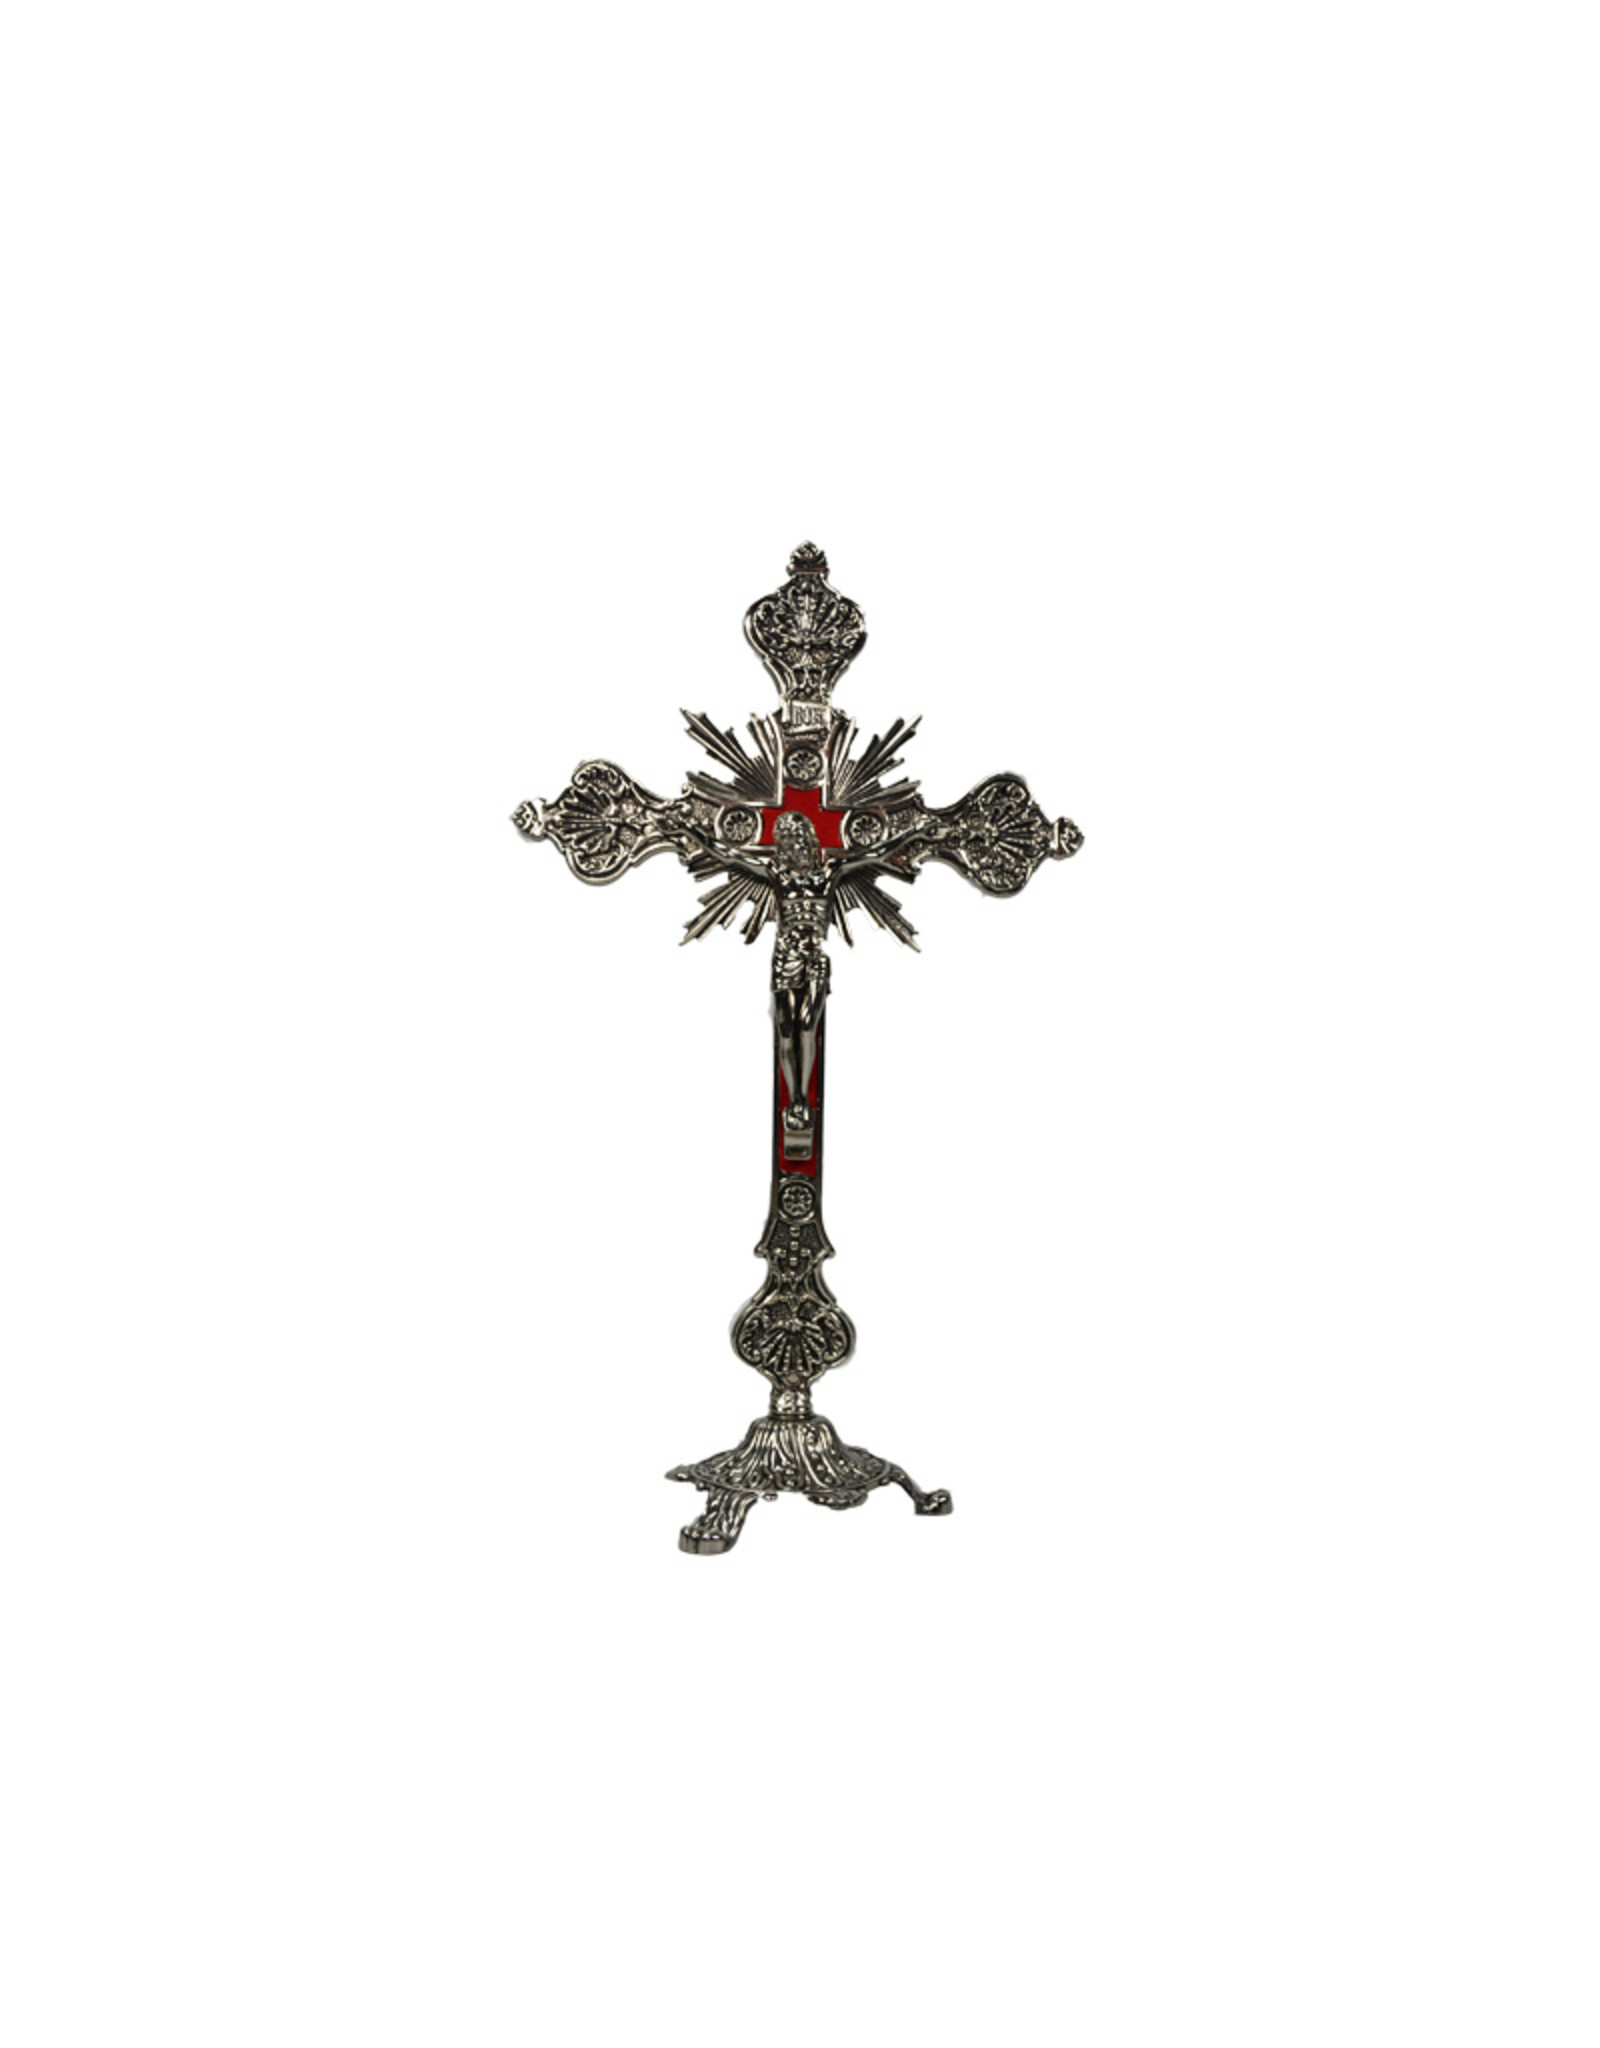 Crucifix en laiton, velours rouge, sur sa base